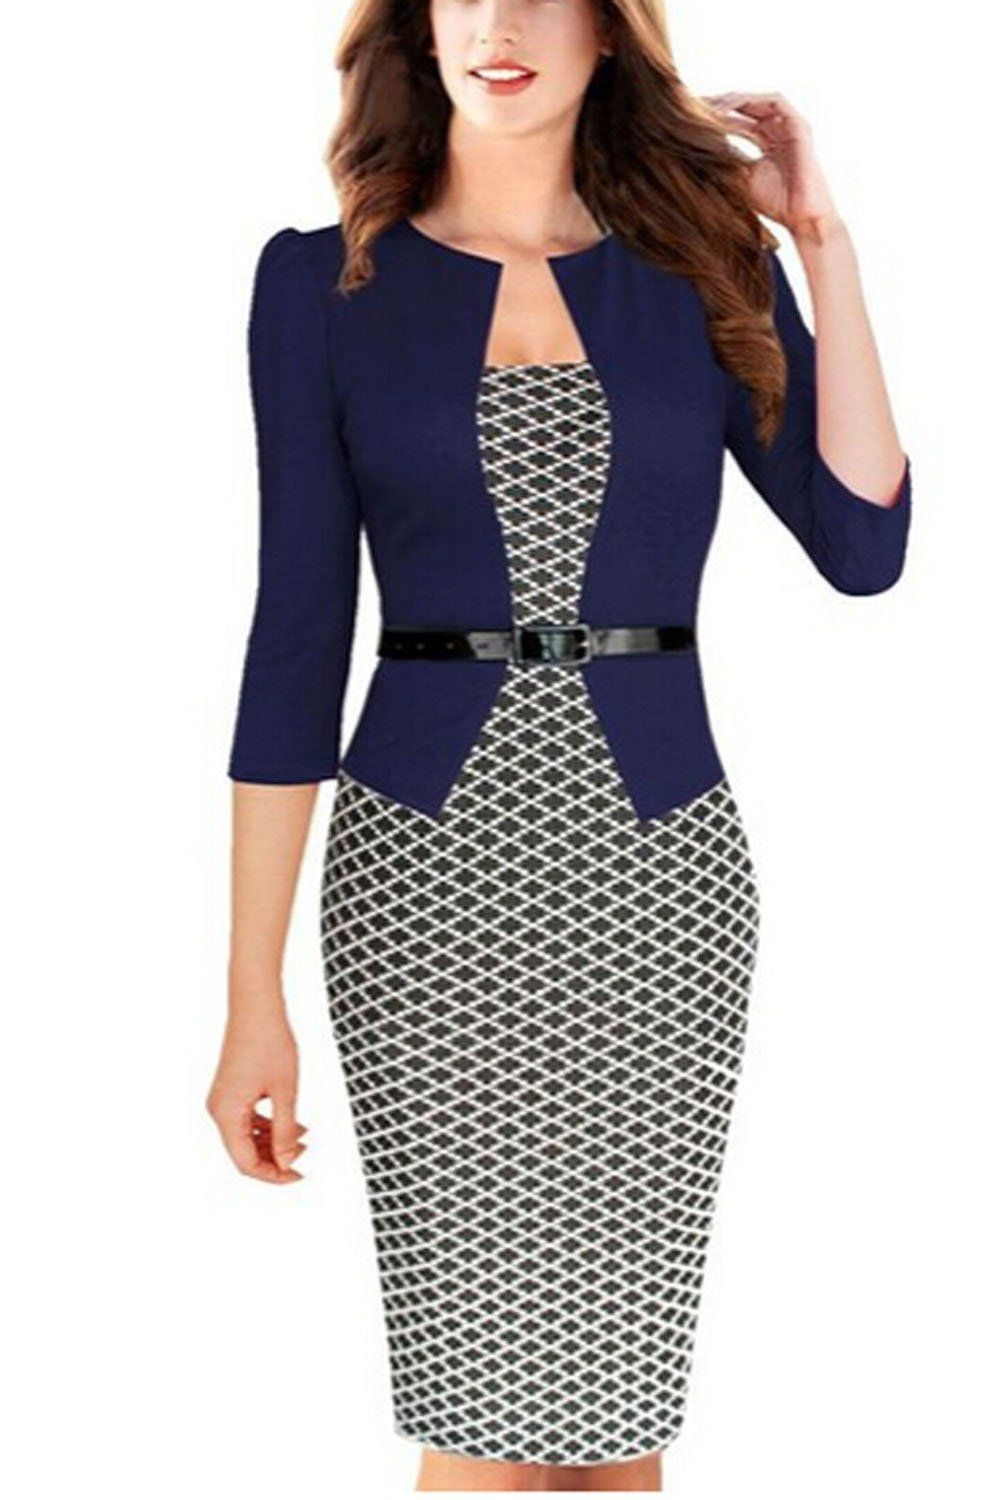 10814bfe5b633 Viwenni Women Colorblock V Neck Business Party Bodycon Dress at Amazon  Women's Clothing store: